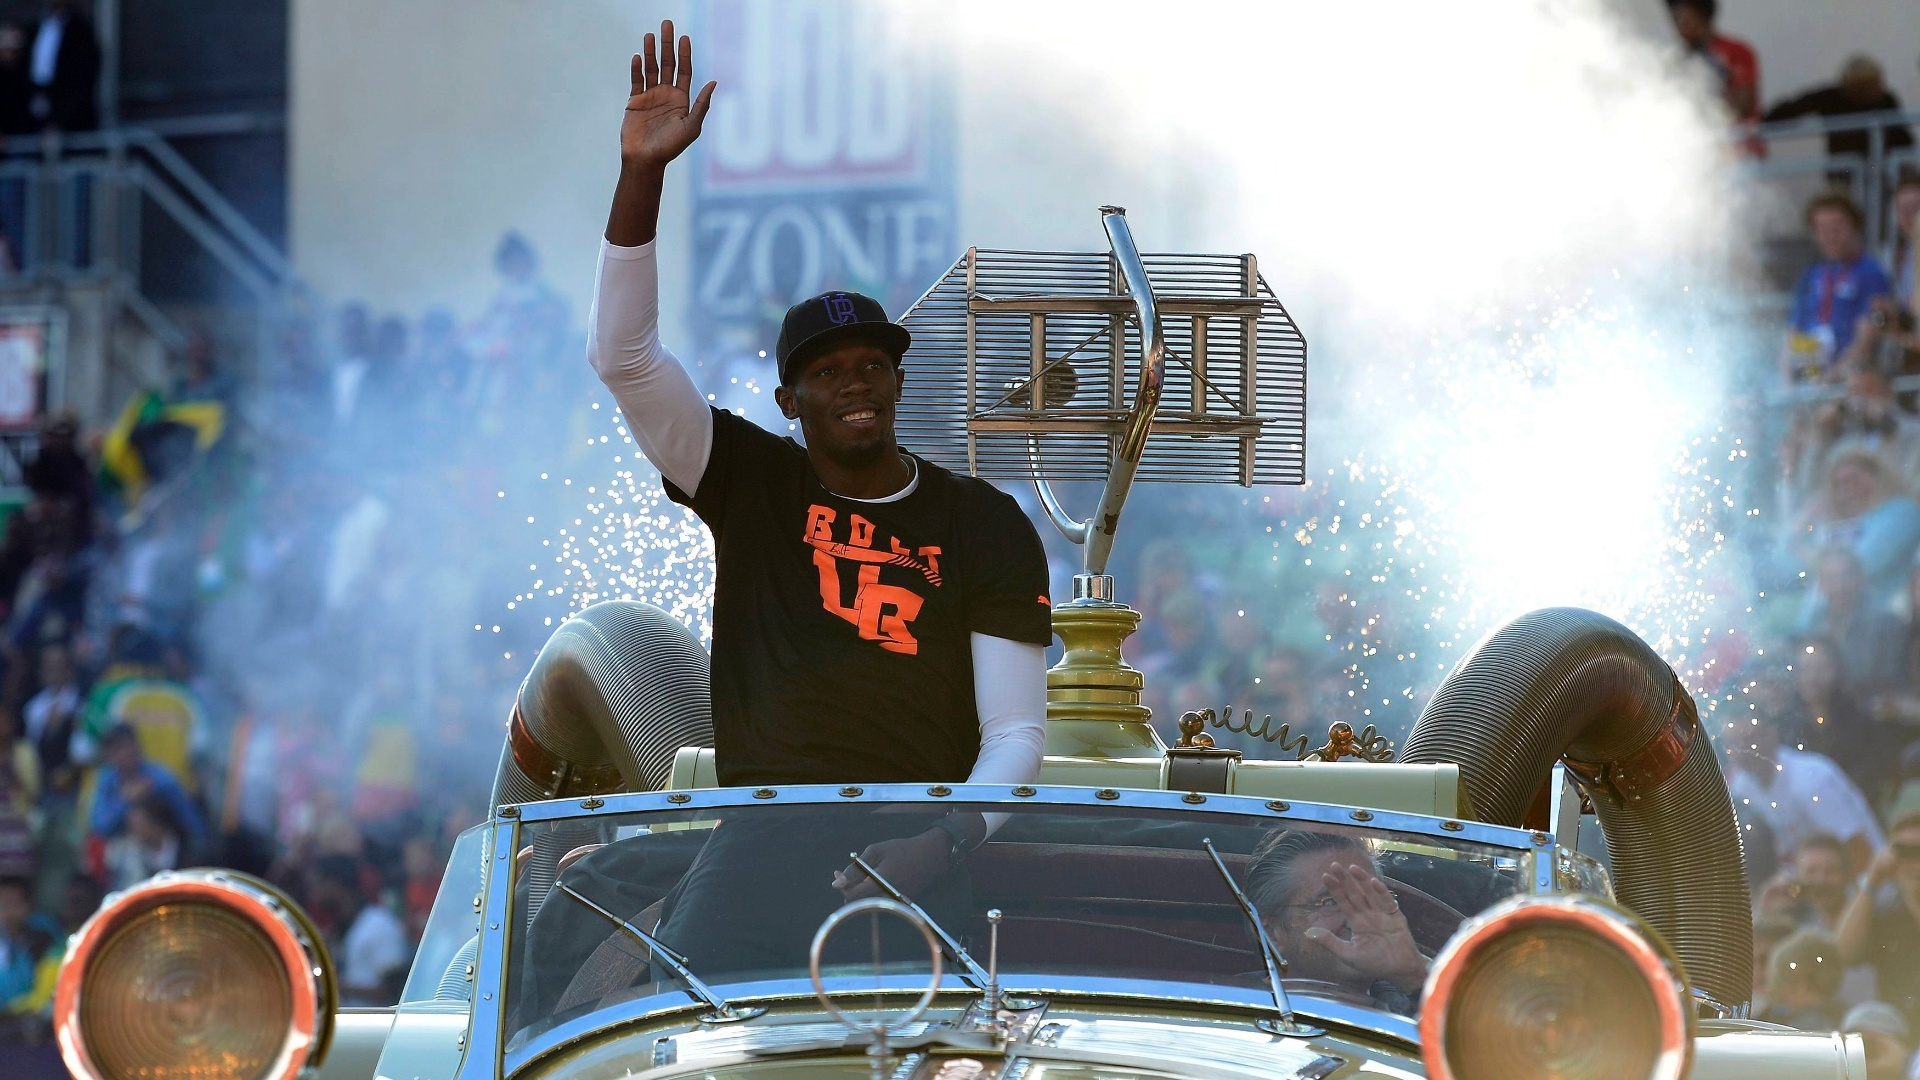 Usain Bolt acena para a torcida na Noruega em cima de um carro conversvel dourado; jamaicano vai disputar uma etapa da Liga de Diamante